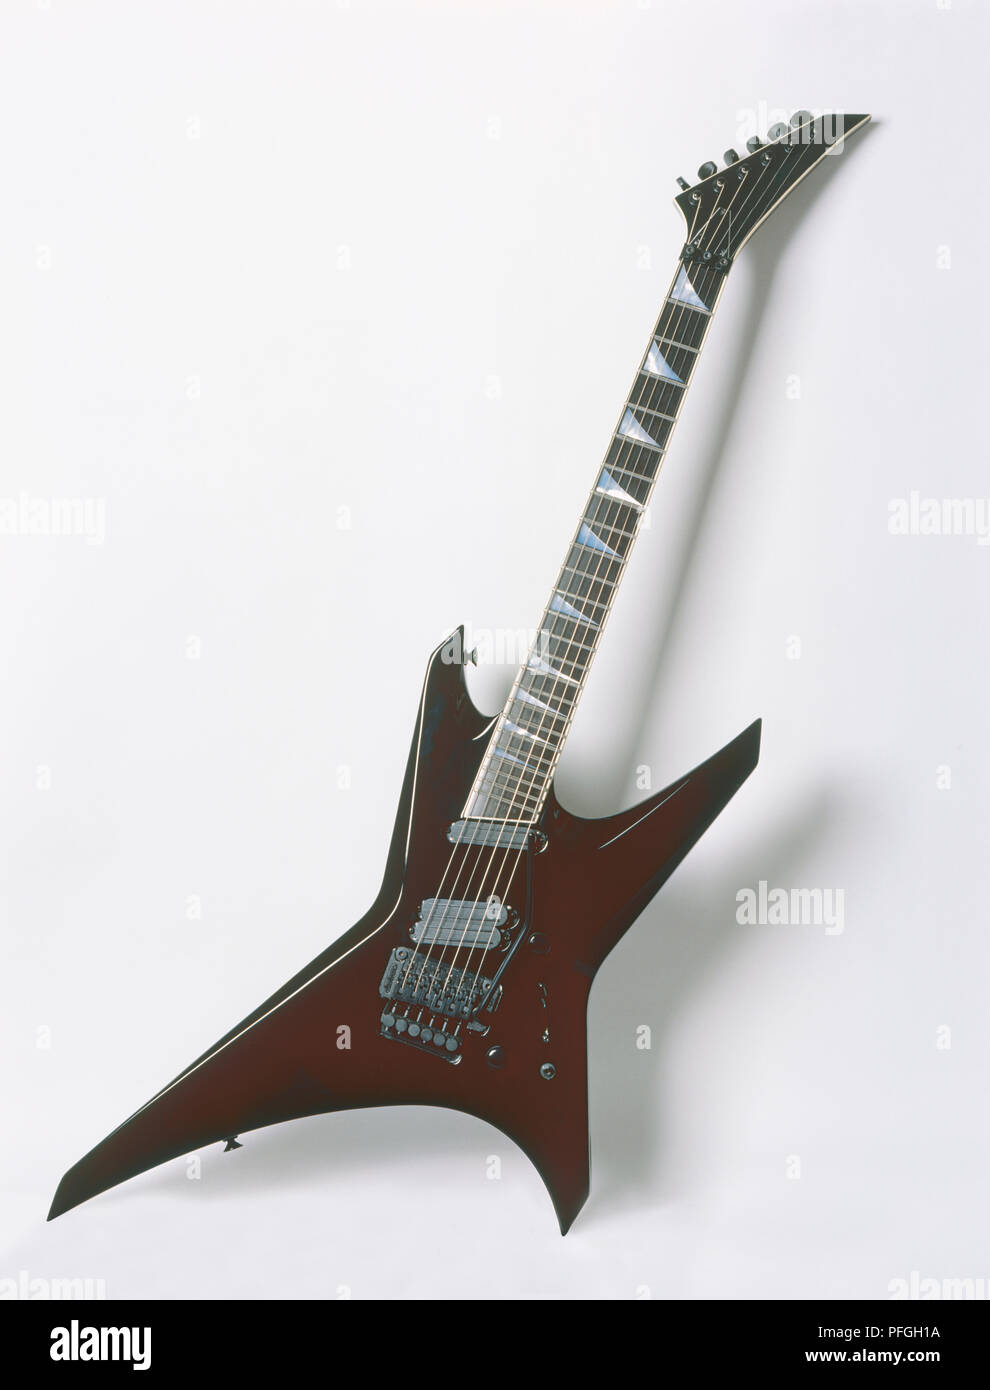 Jackson Professional Warrior, electric guitar made in Japan, 1990, front view Stock Photo